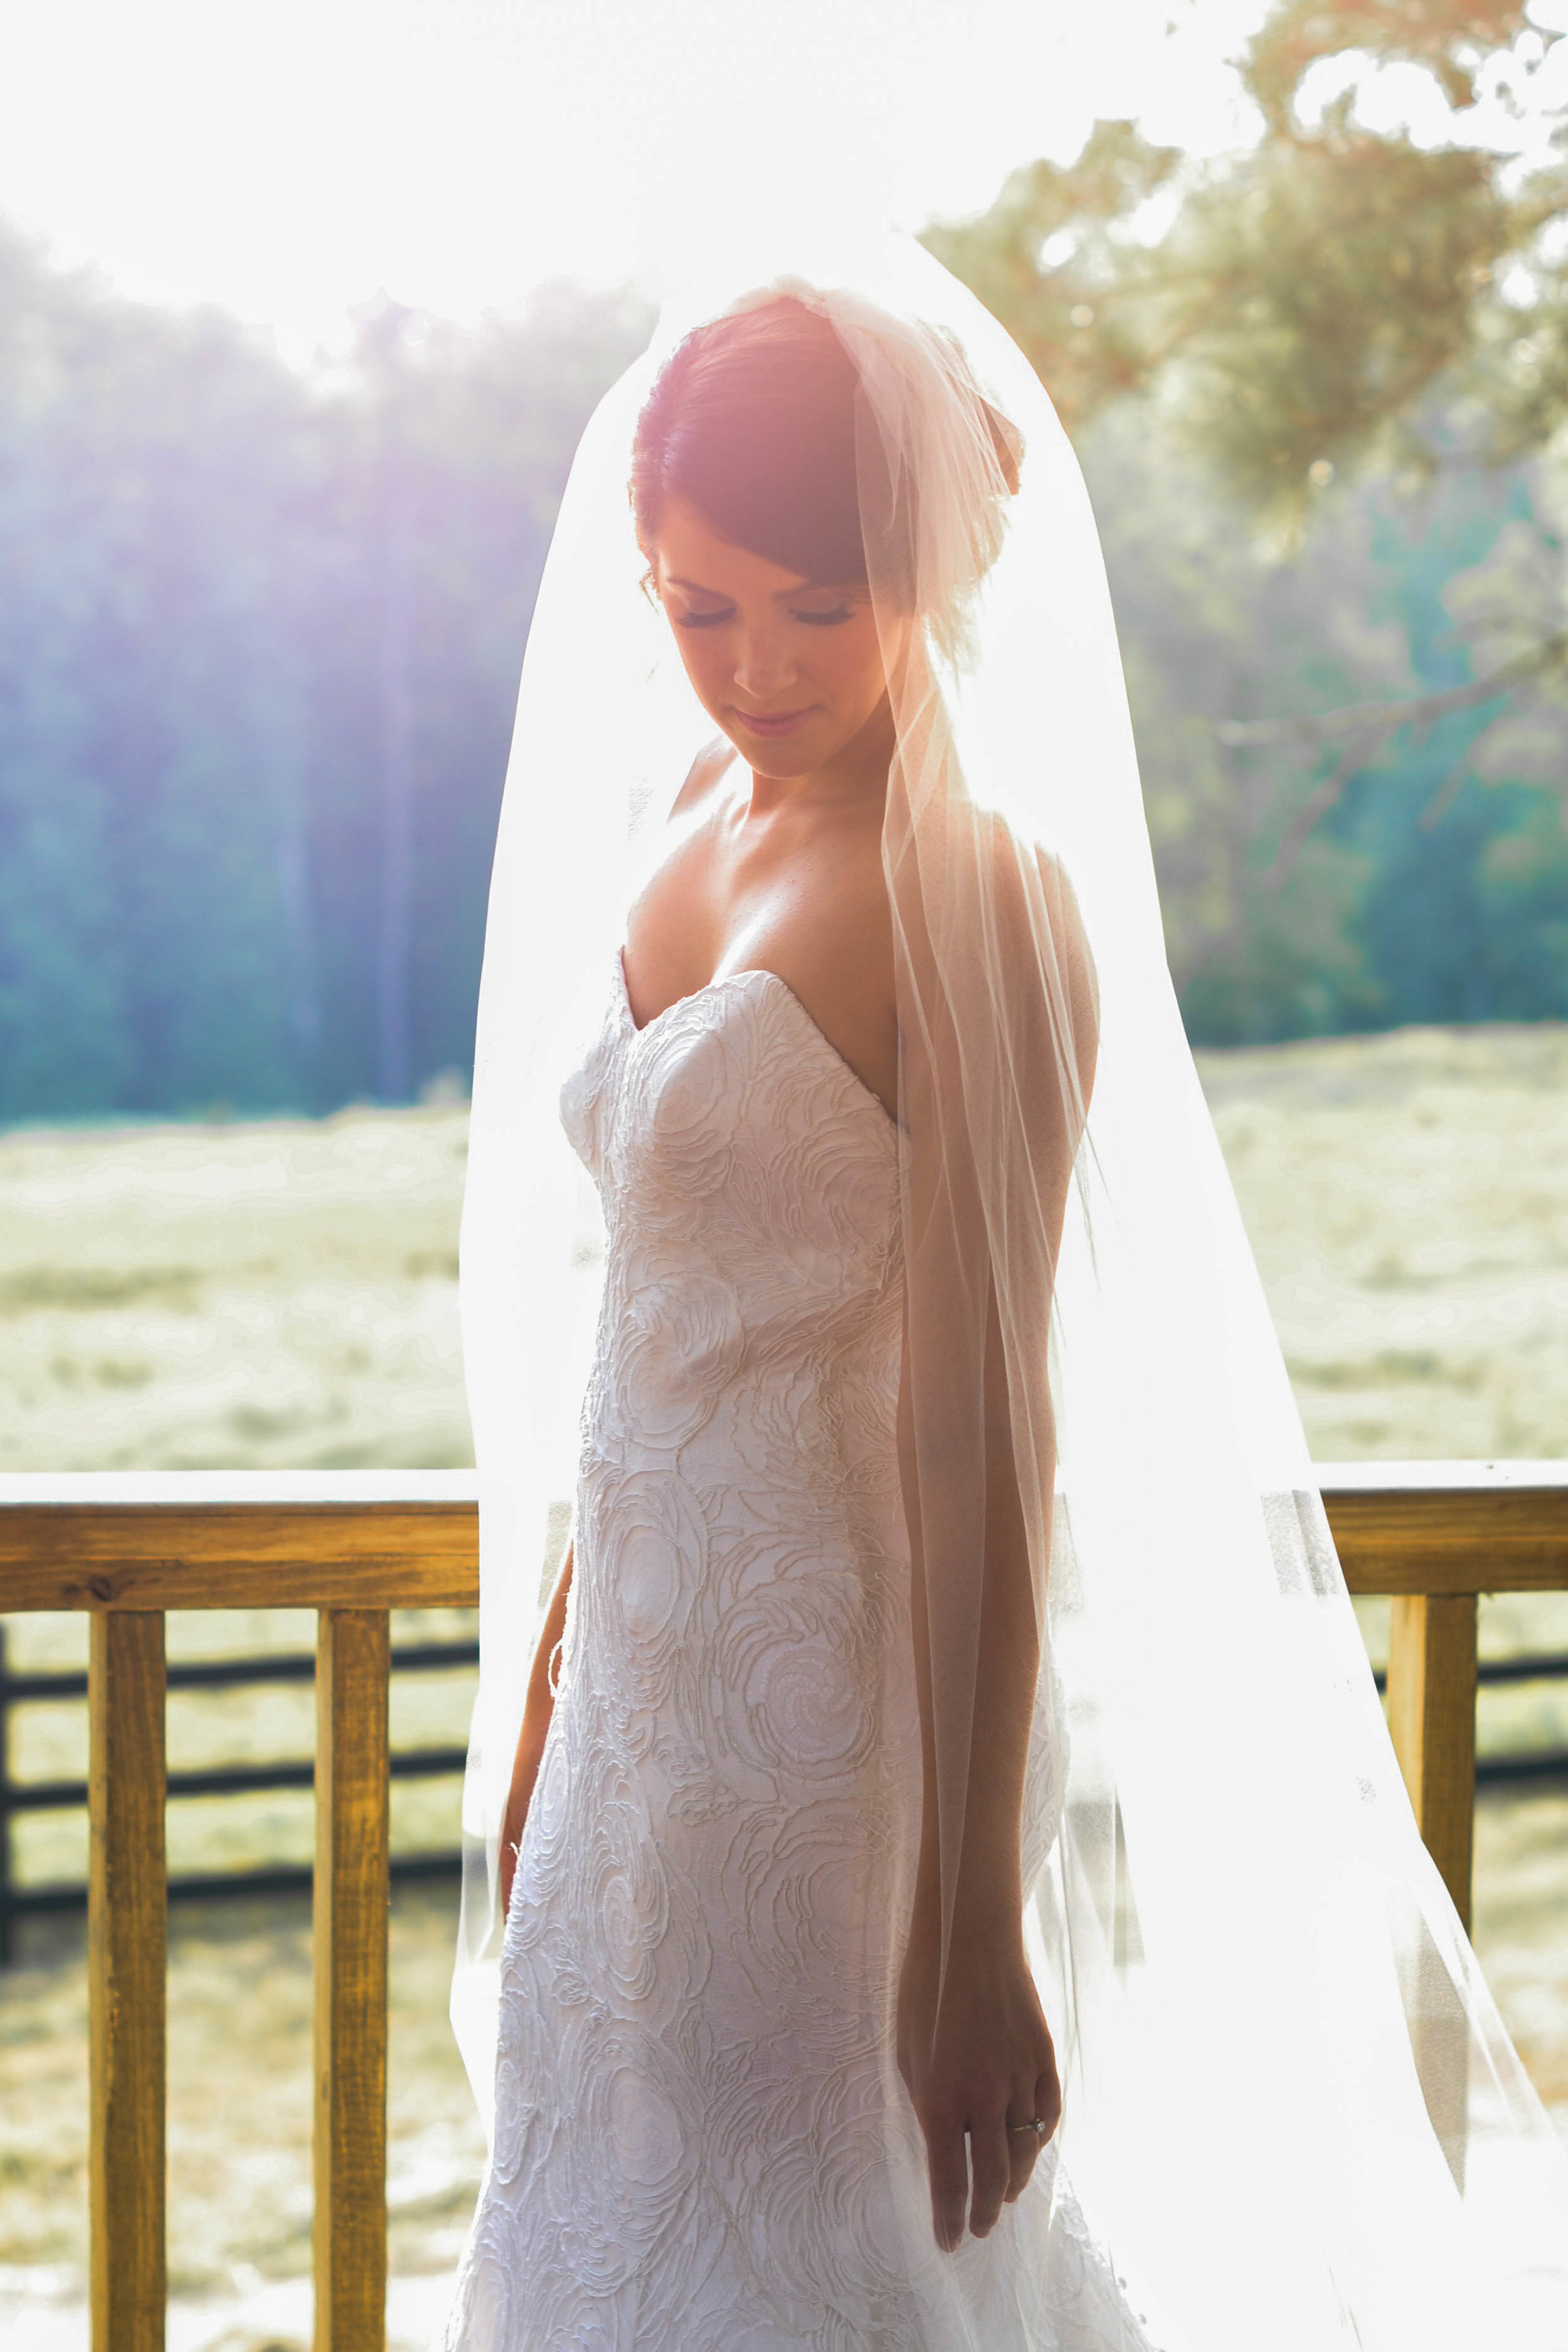 bridal-portrait-pine-knoll-farms-greg-boulus-events-augusta-georgia